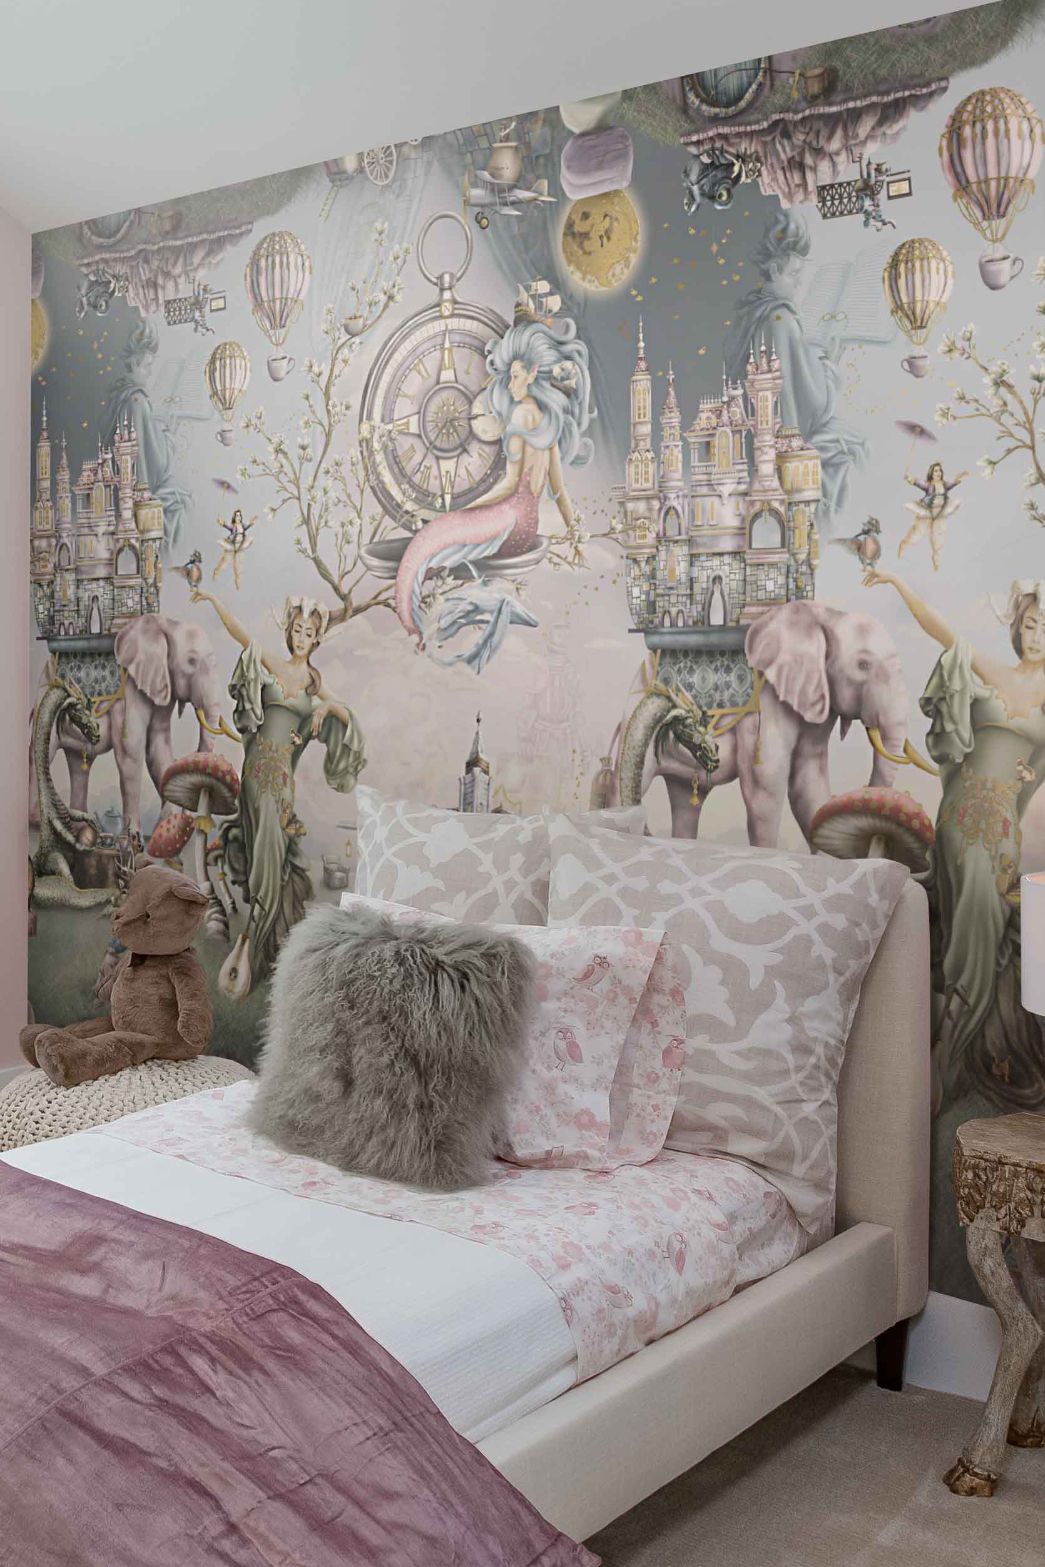 This is a Girls Fairytale bedroom wallpaper wall mural design from Australia. It features a mermaid, mother nature, bear, dragon, night, sky, elephants, castle and many more story book illustrations. The colours are pink, purple, sage green, steel blue and gold, although this is custom bespoke wallpaper so colours can be changed.